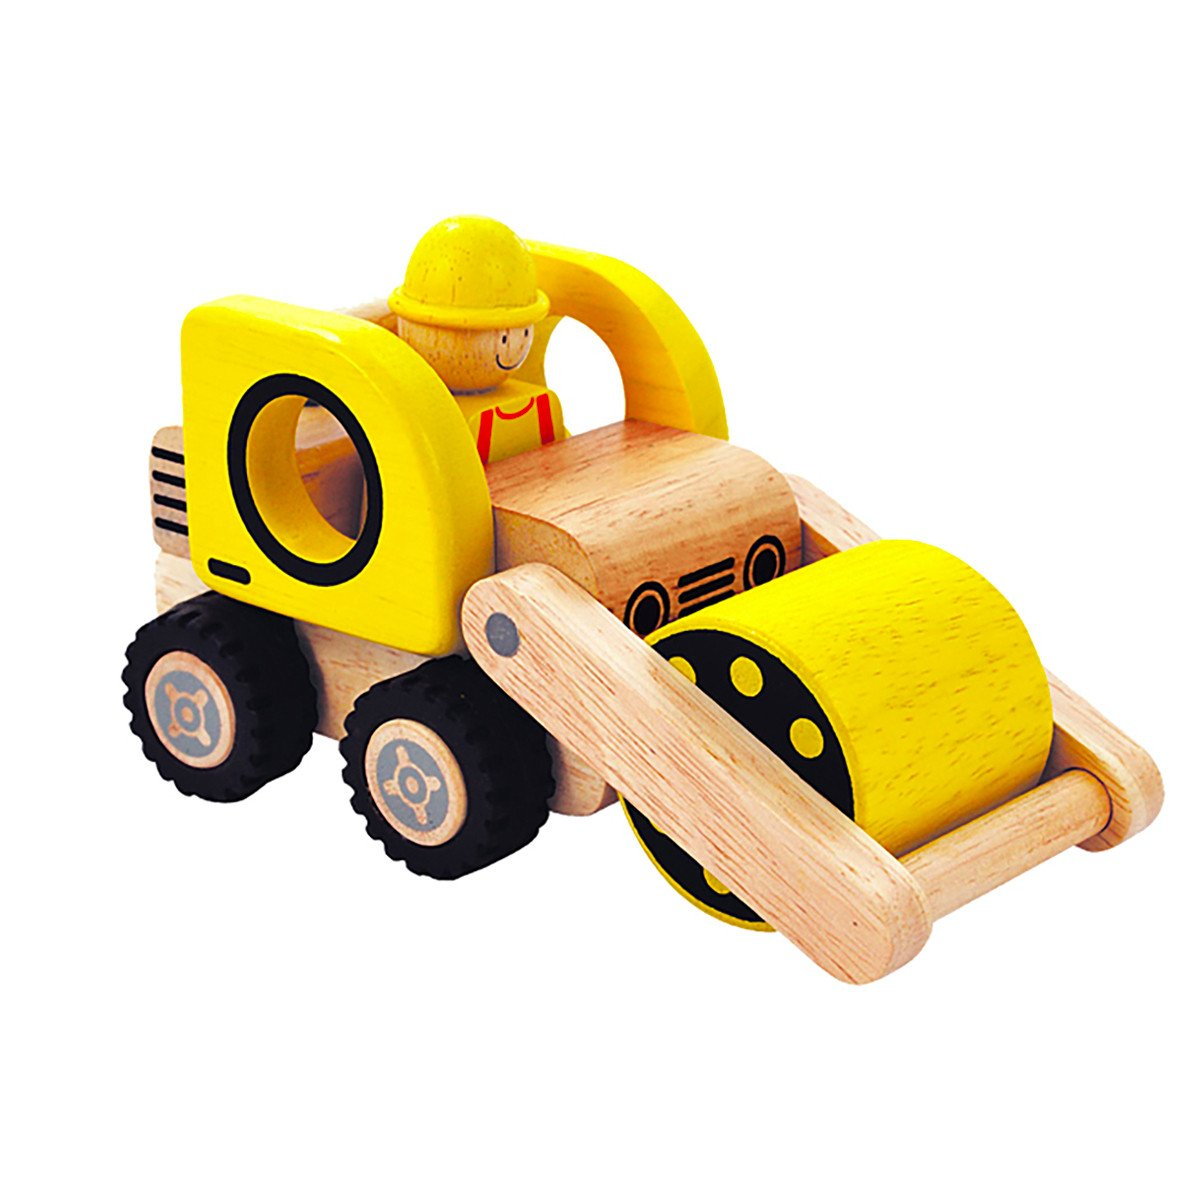 I'm Toy Road Vehicles Im Toy Play Vehicles Roller at Little Earth Nest Eco Shop